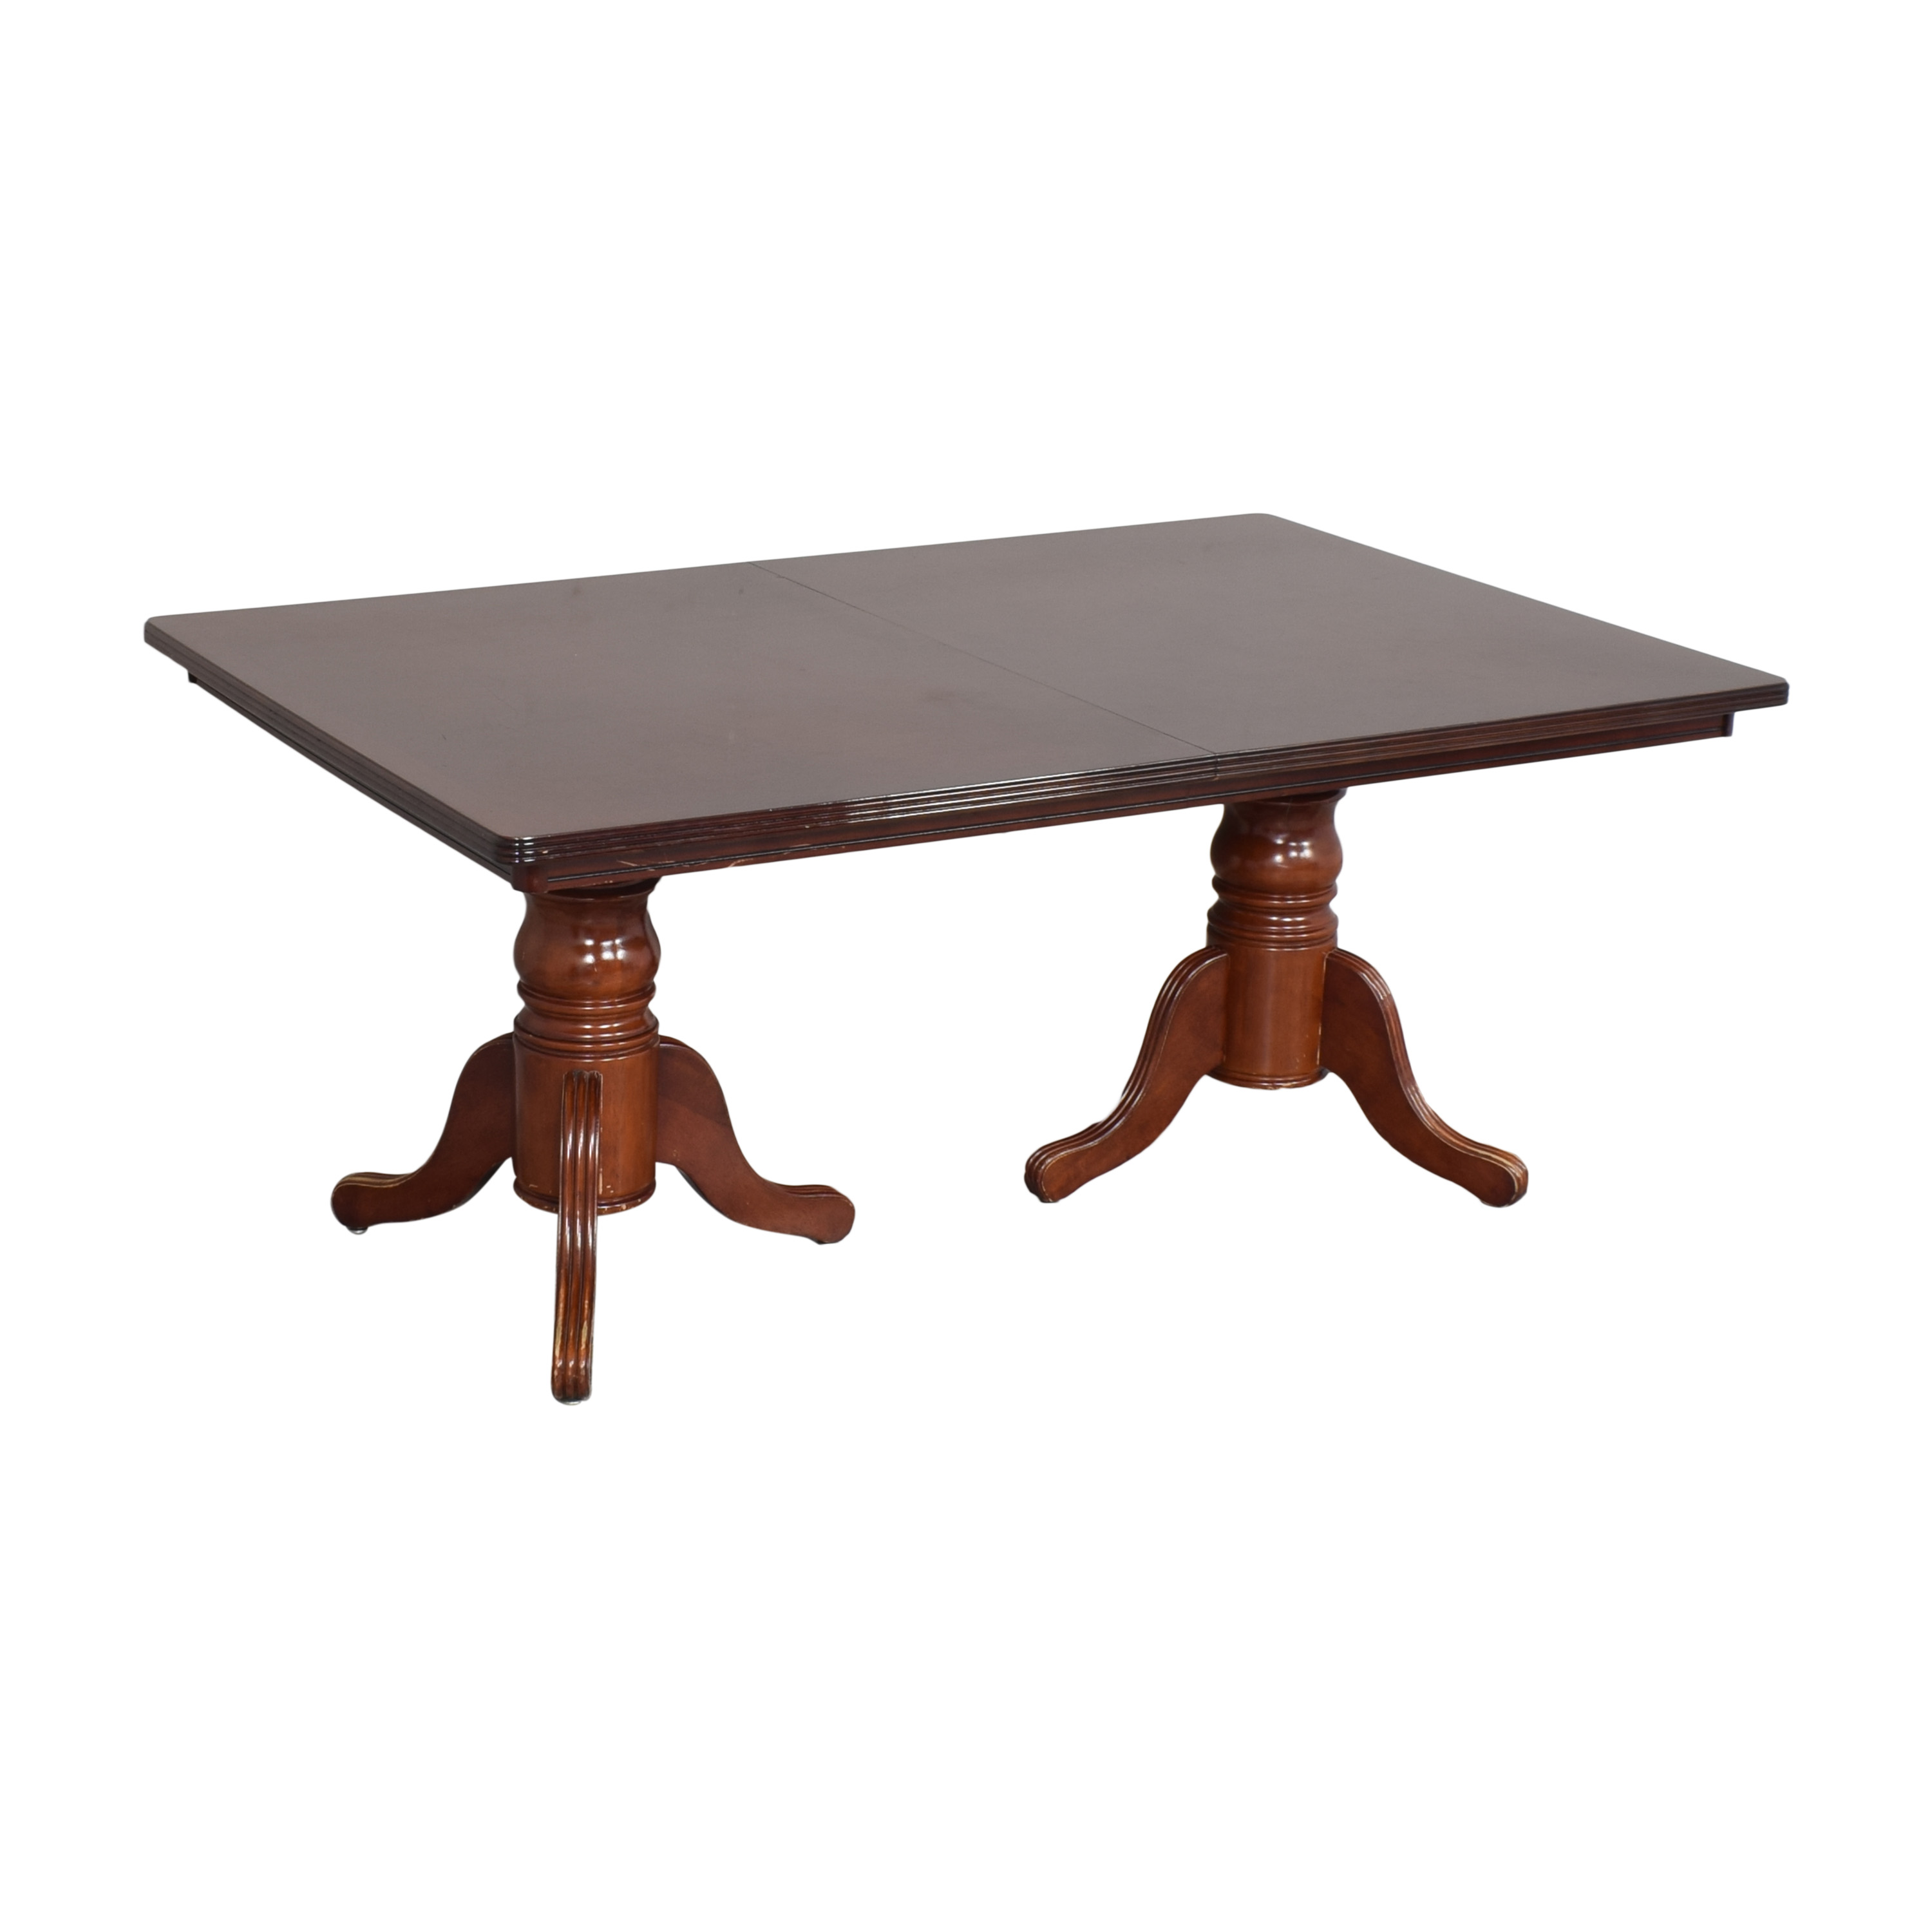 Double Pedestal Extendable Dining Table discount